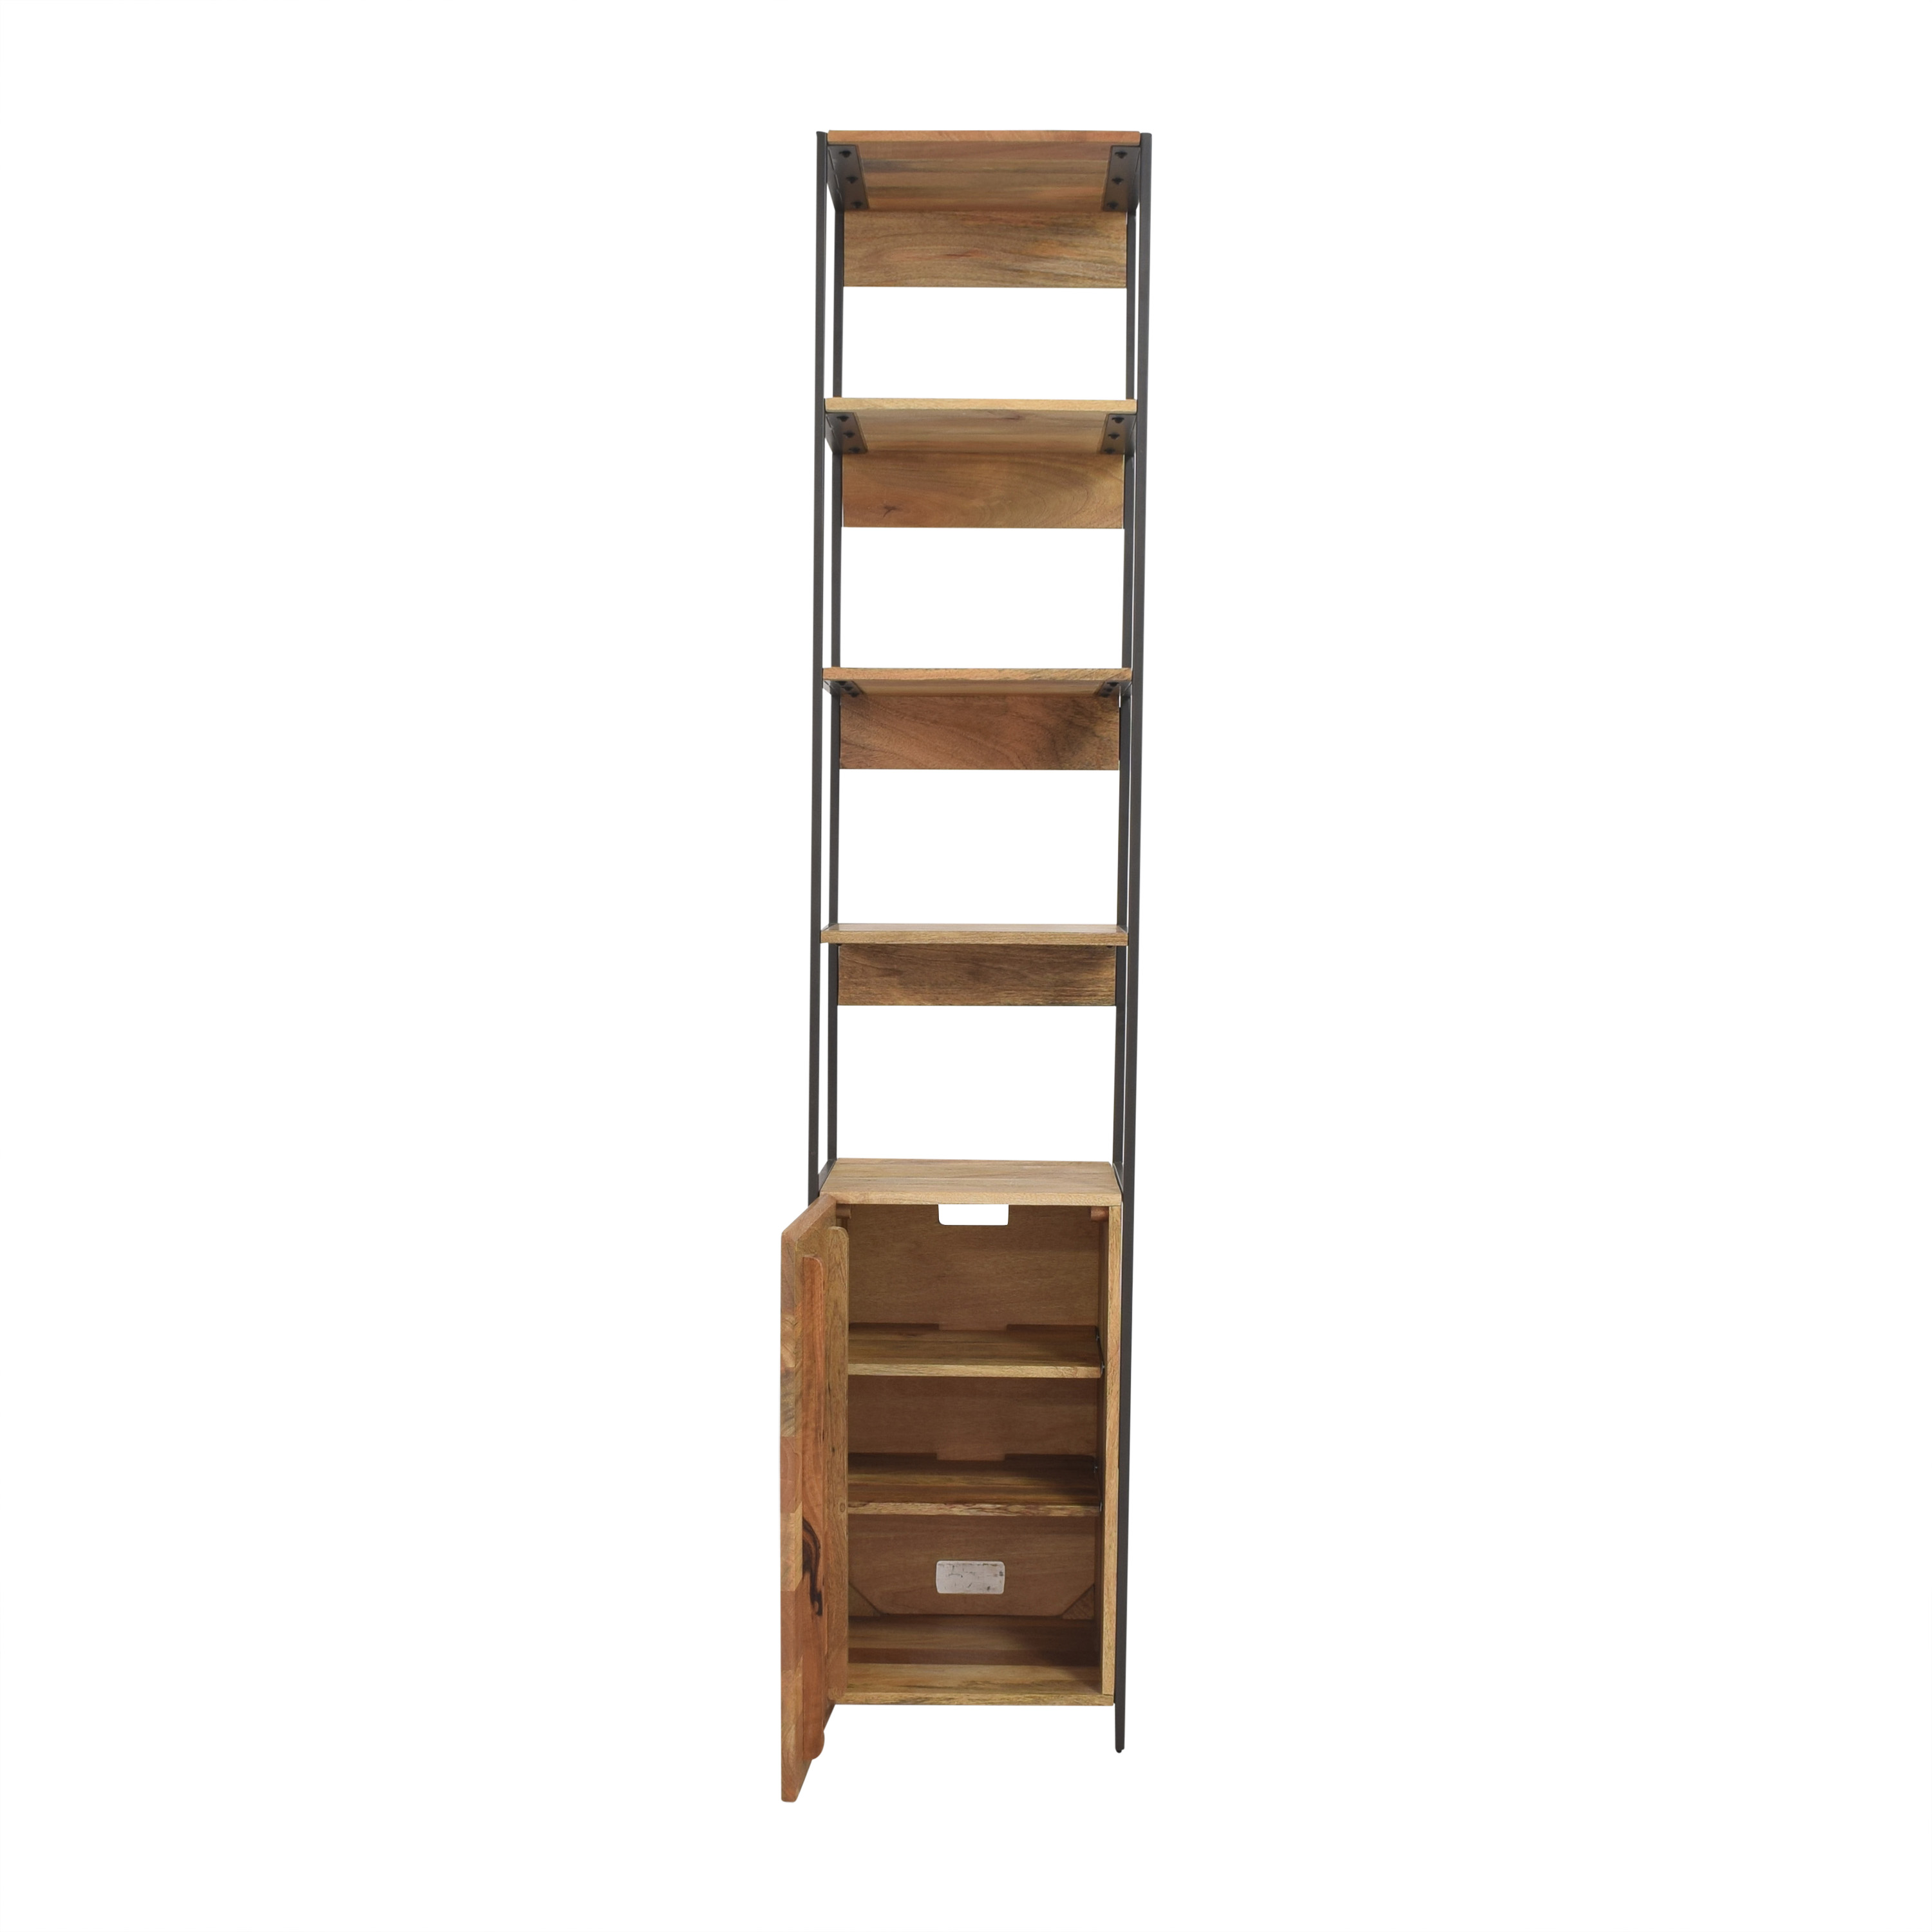 buy West Elm Industrial Modular Open and Closed Storage West Elm Bookcases & Shelving